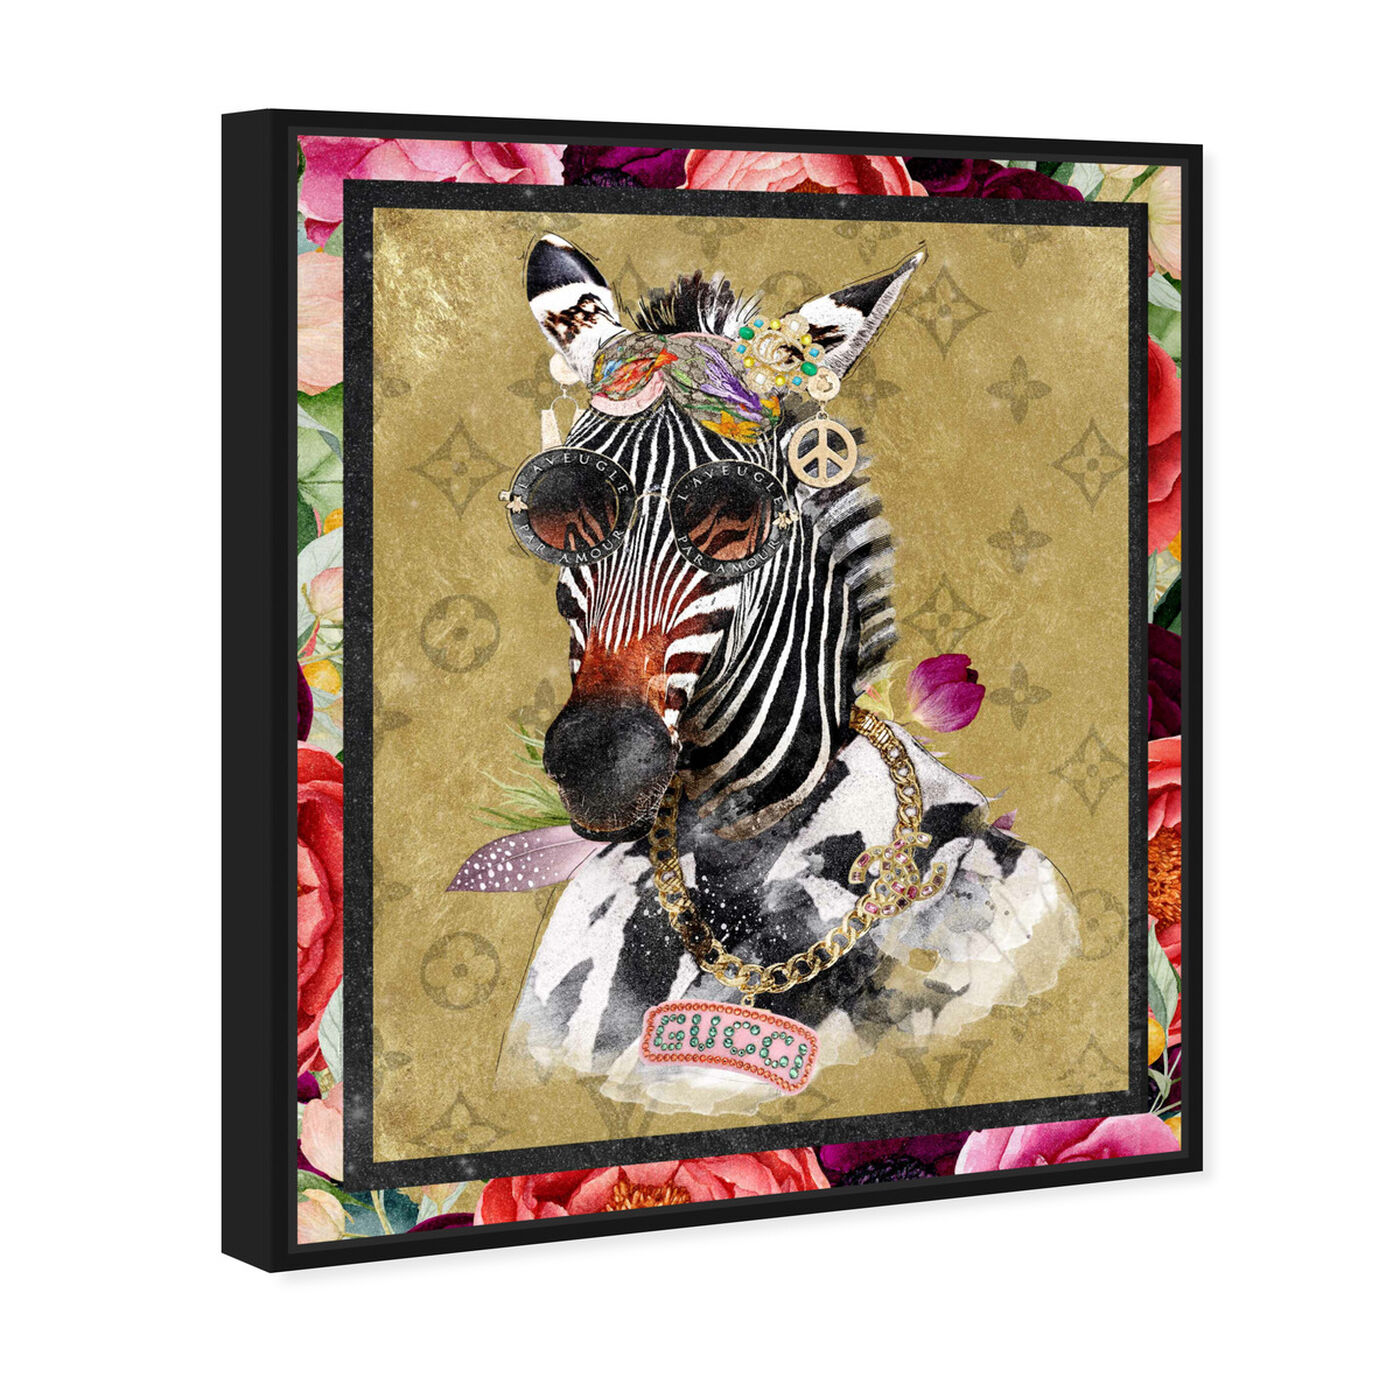 Angled view of Luxe Aunt Portrait featuring animals and zoo and wild animals art.